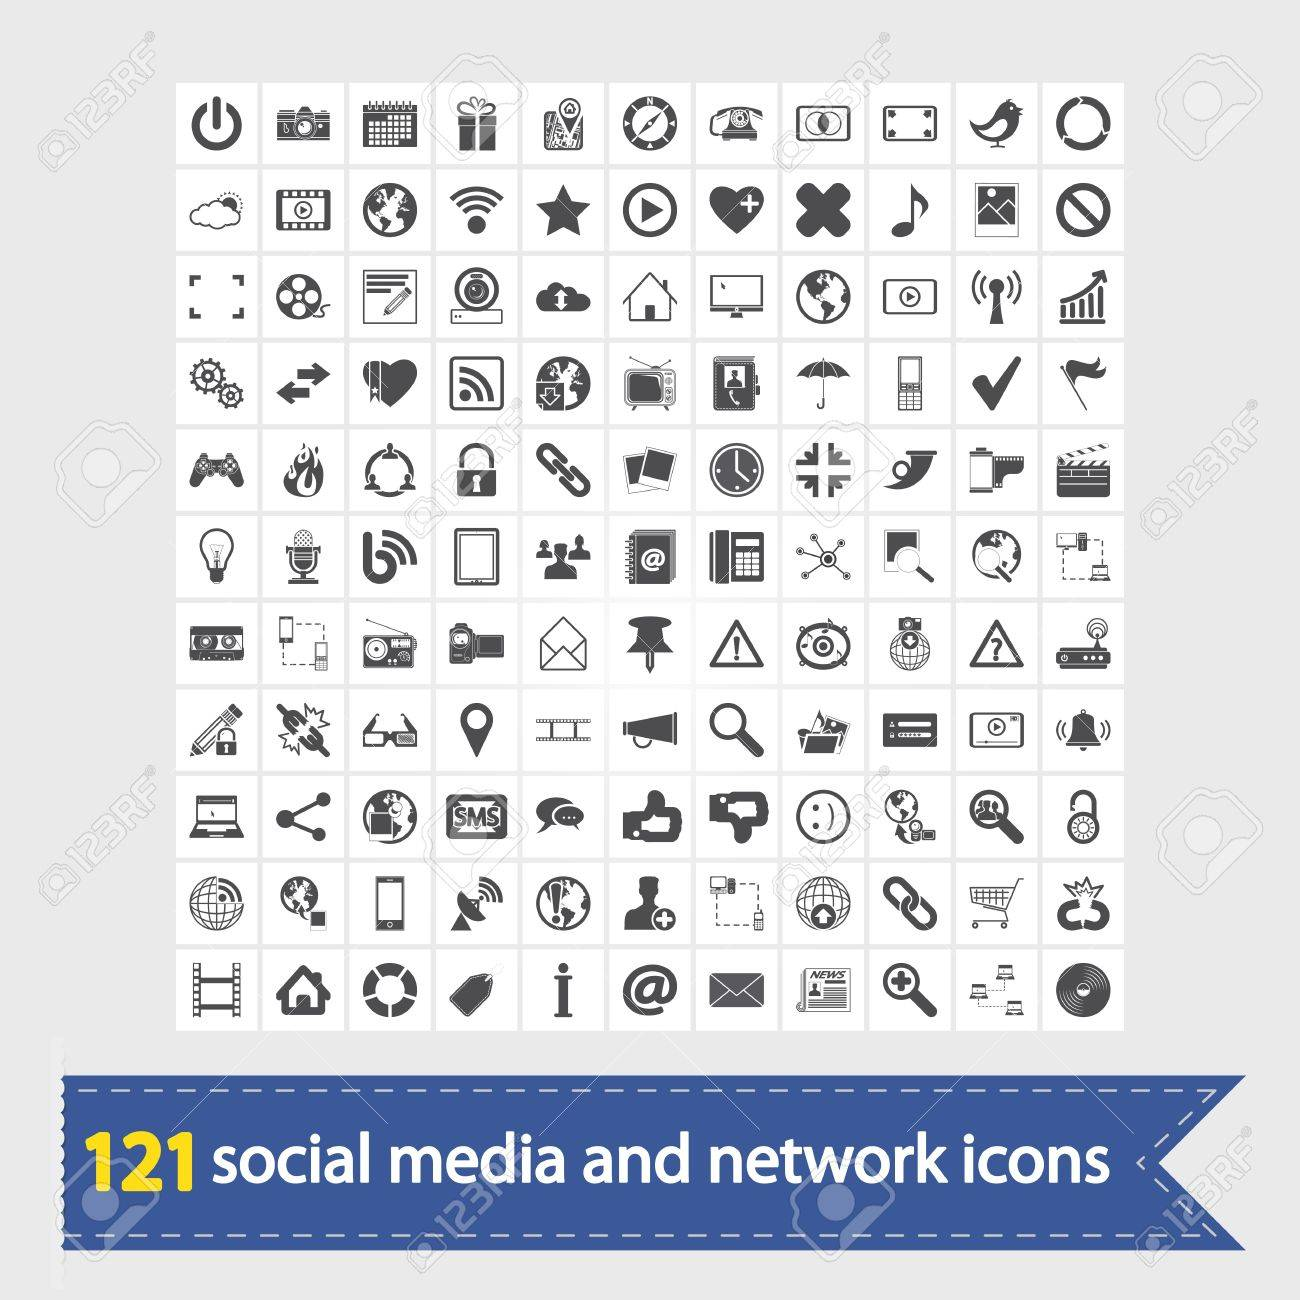 121 Social media and network icons  Vector illustration Stock Vector - 18650154